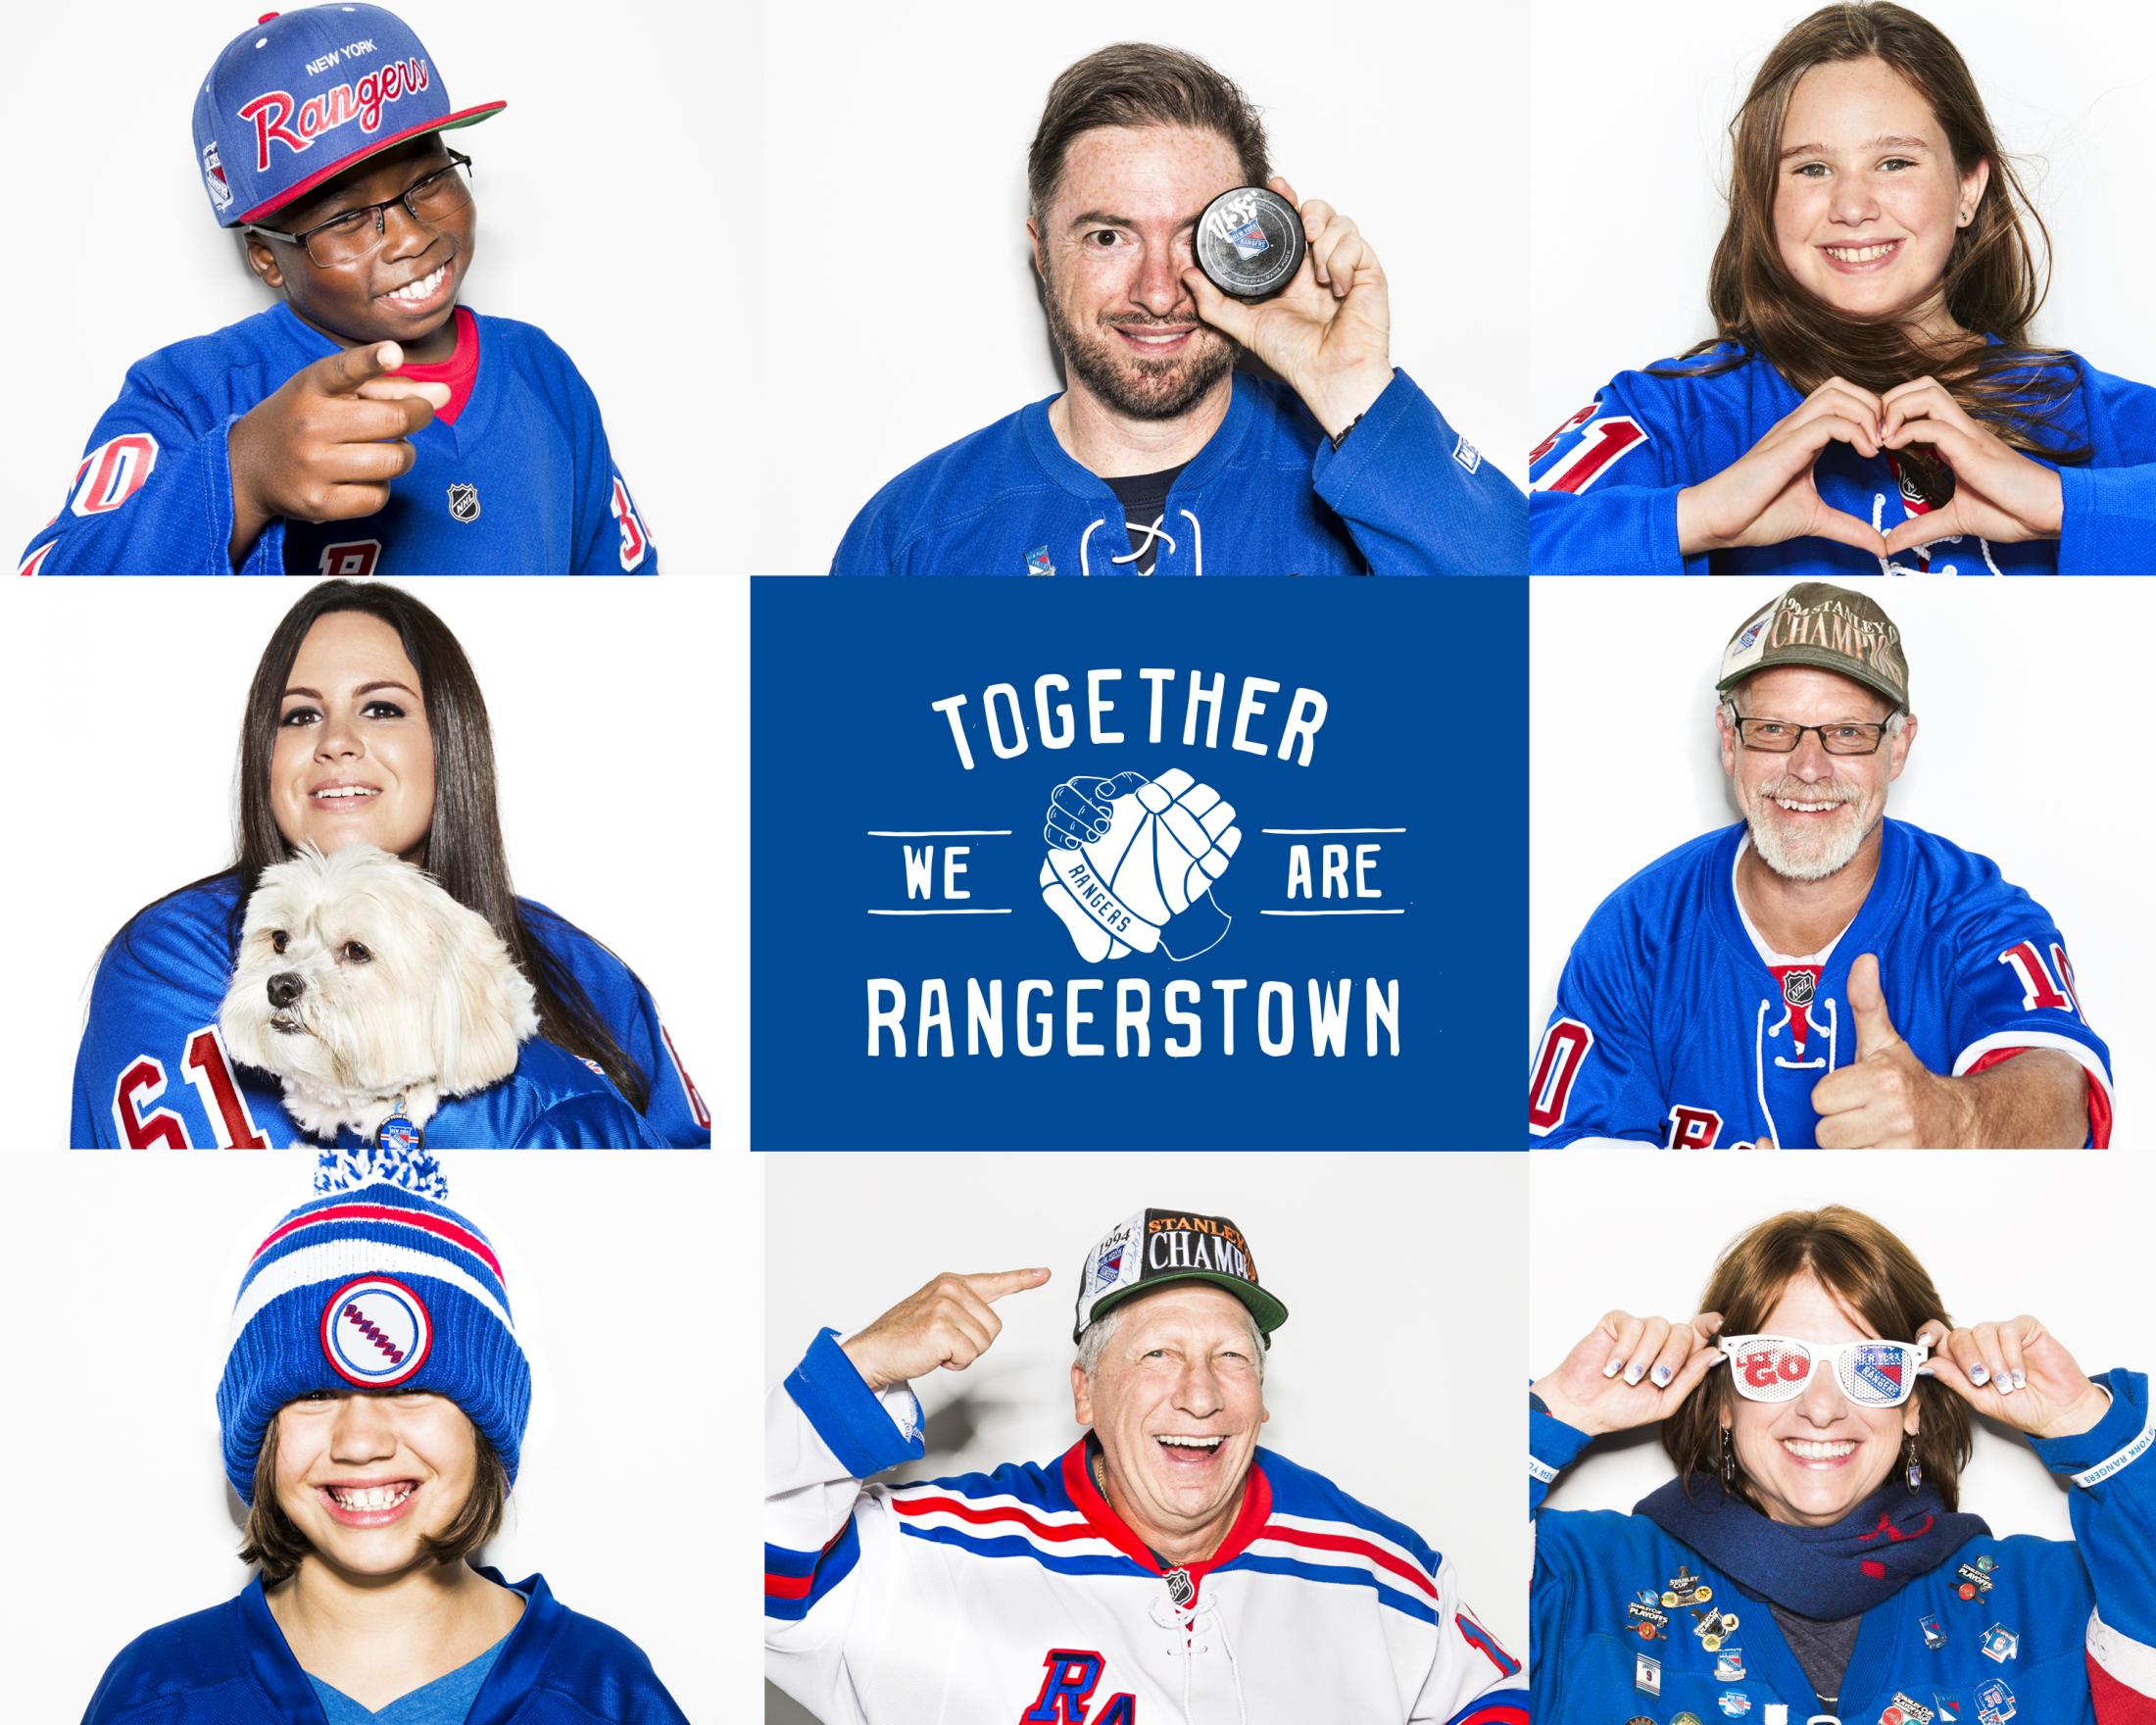 Image Media for NY Rangers - Since